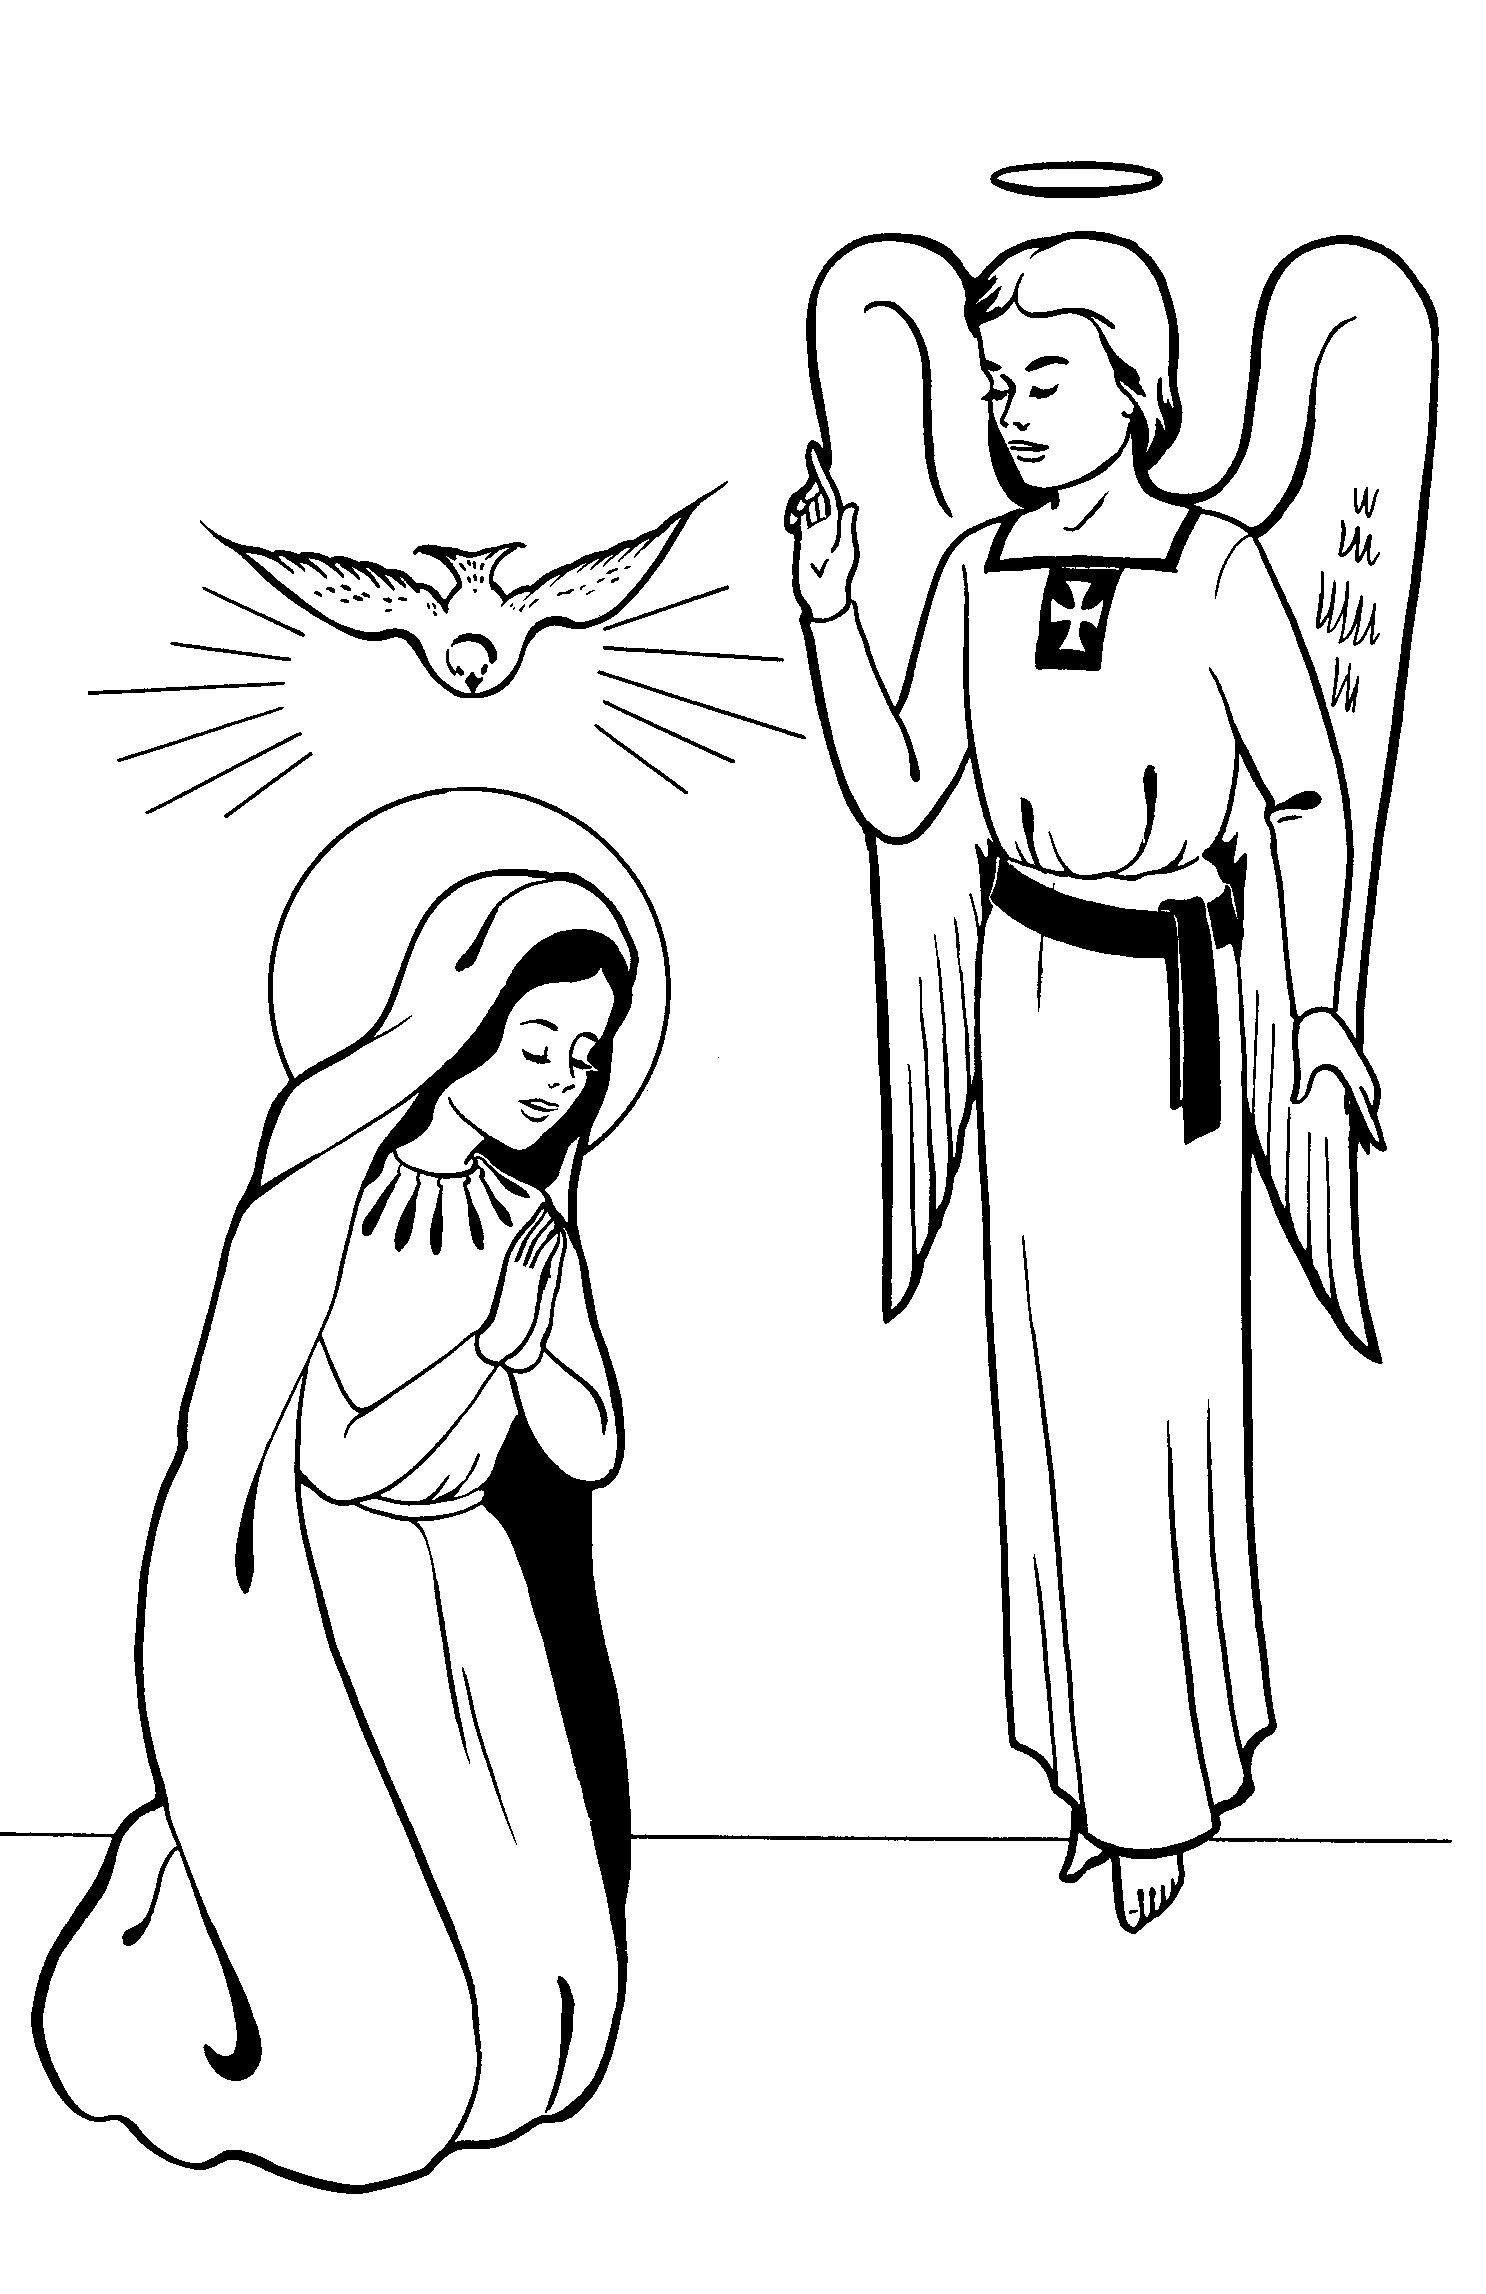 Annunciationcoloringpage Annunciation Coloring Page From We Love God